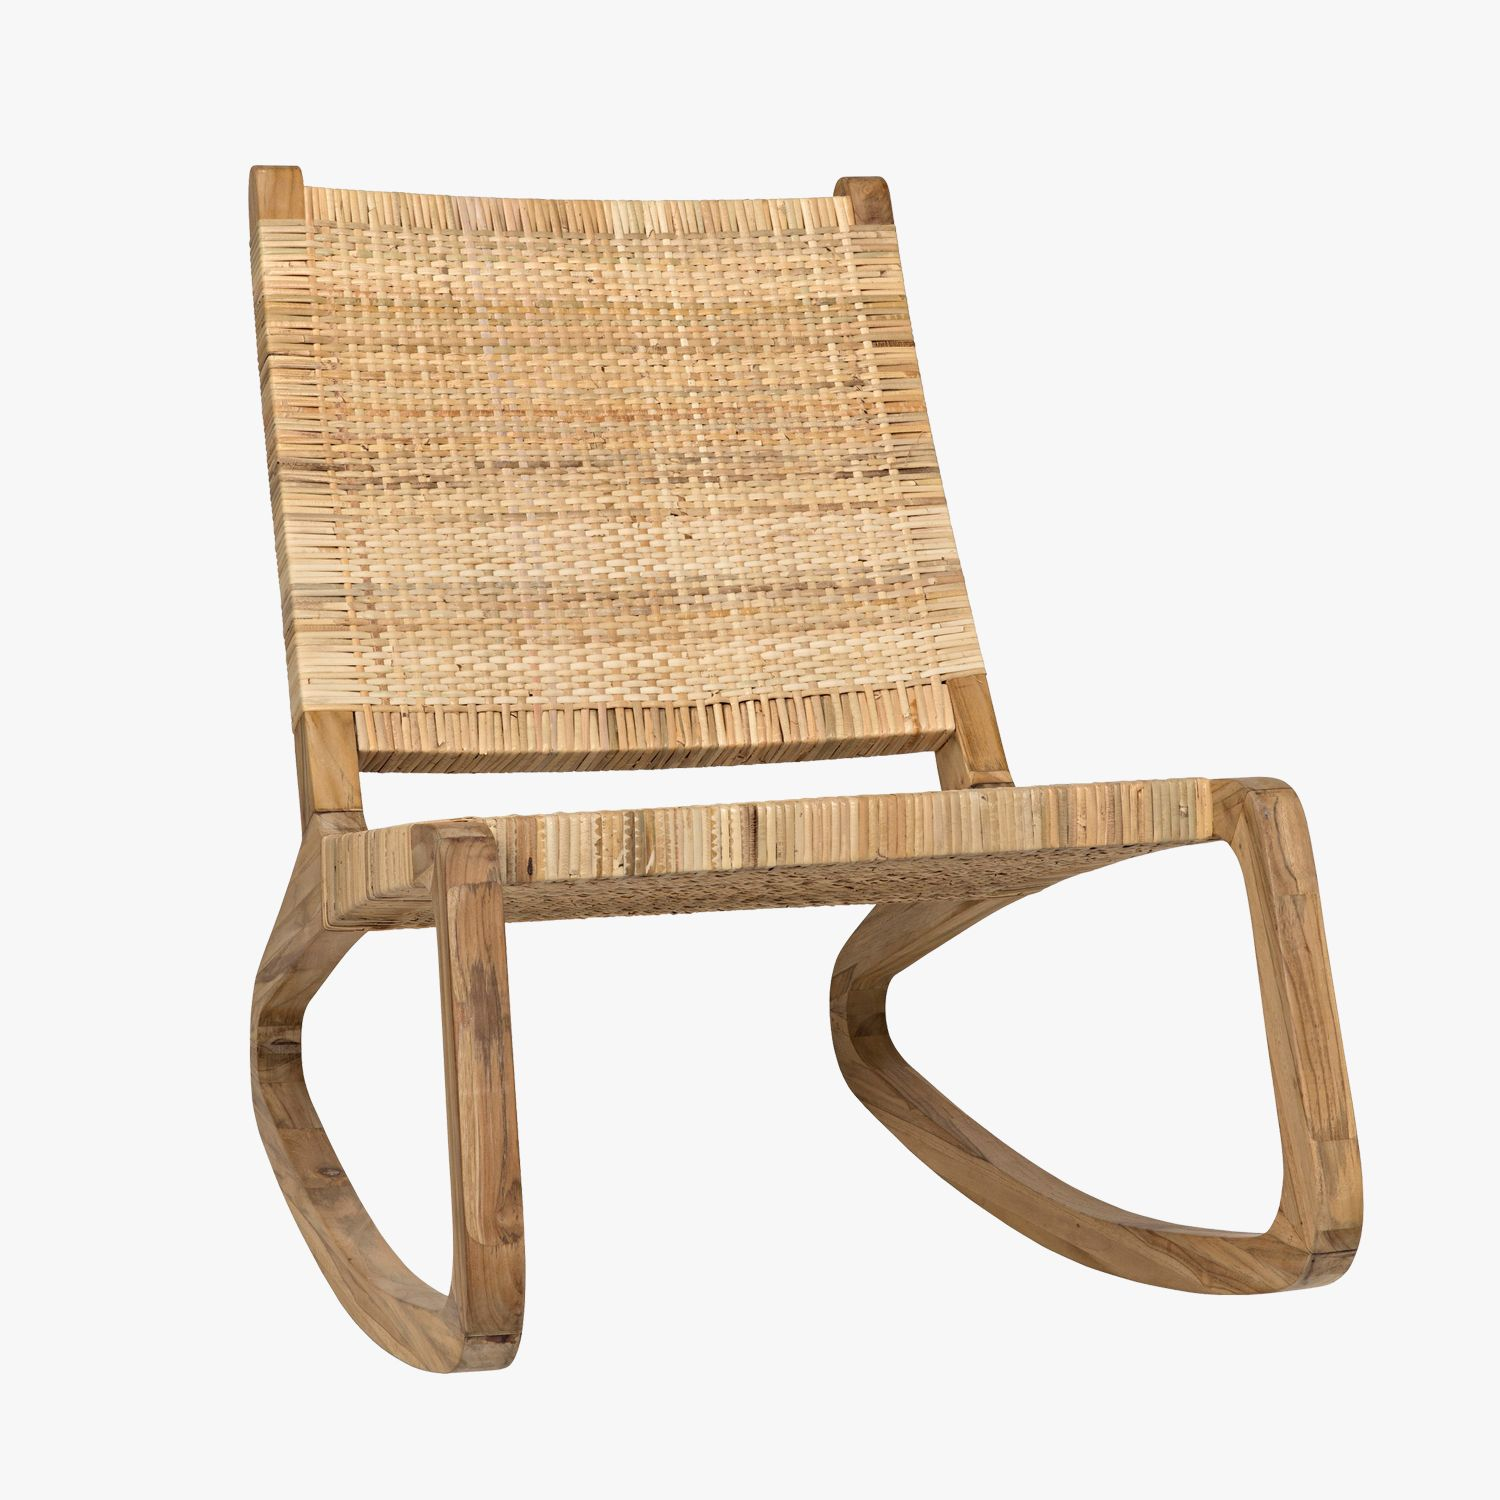 Our Las Palmas Rocking Teak Chair From Noir Features A Woven White Cedar Seat And Mid Century Inspired Base